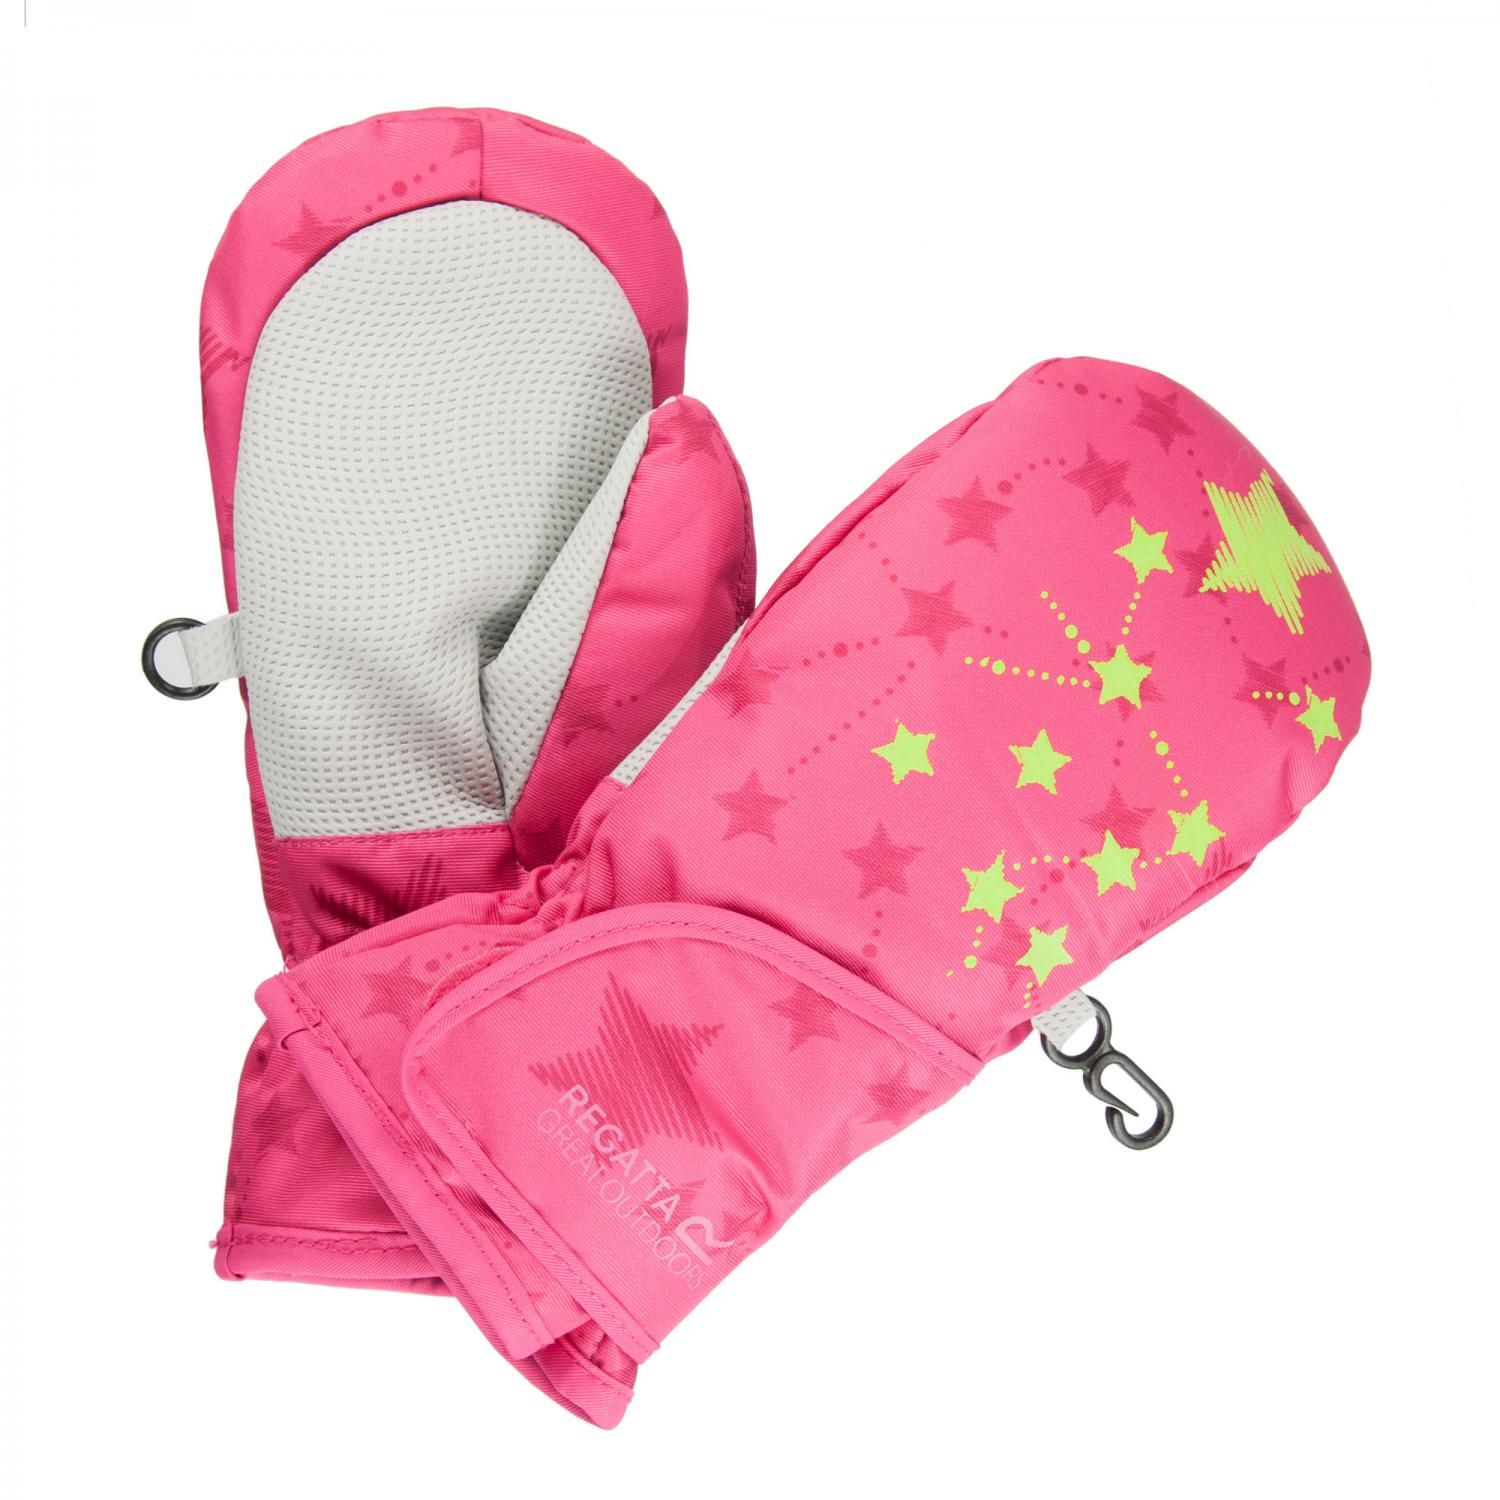 Kids Padded Spatter Mitts II Jem Star